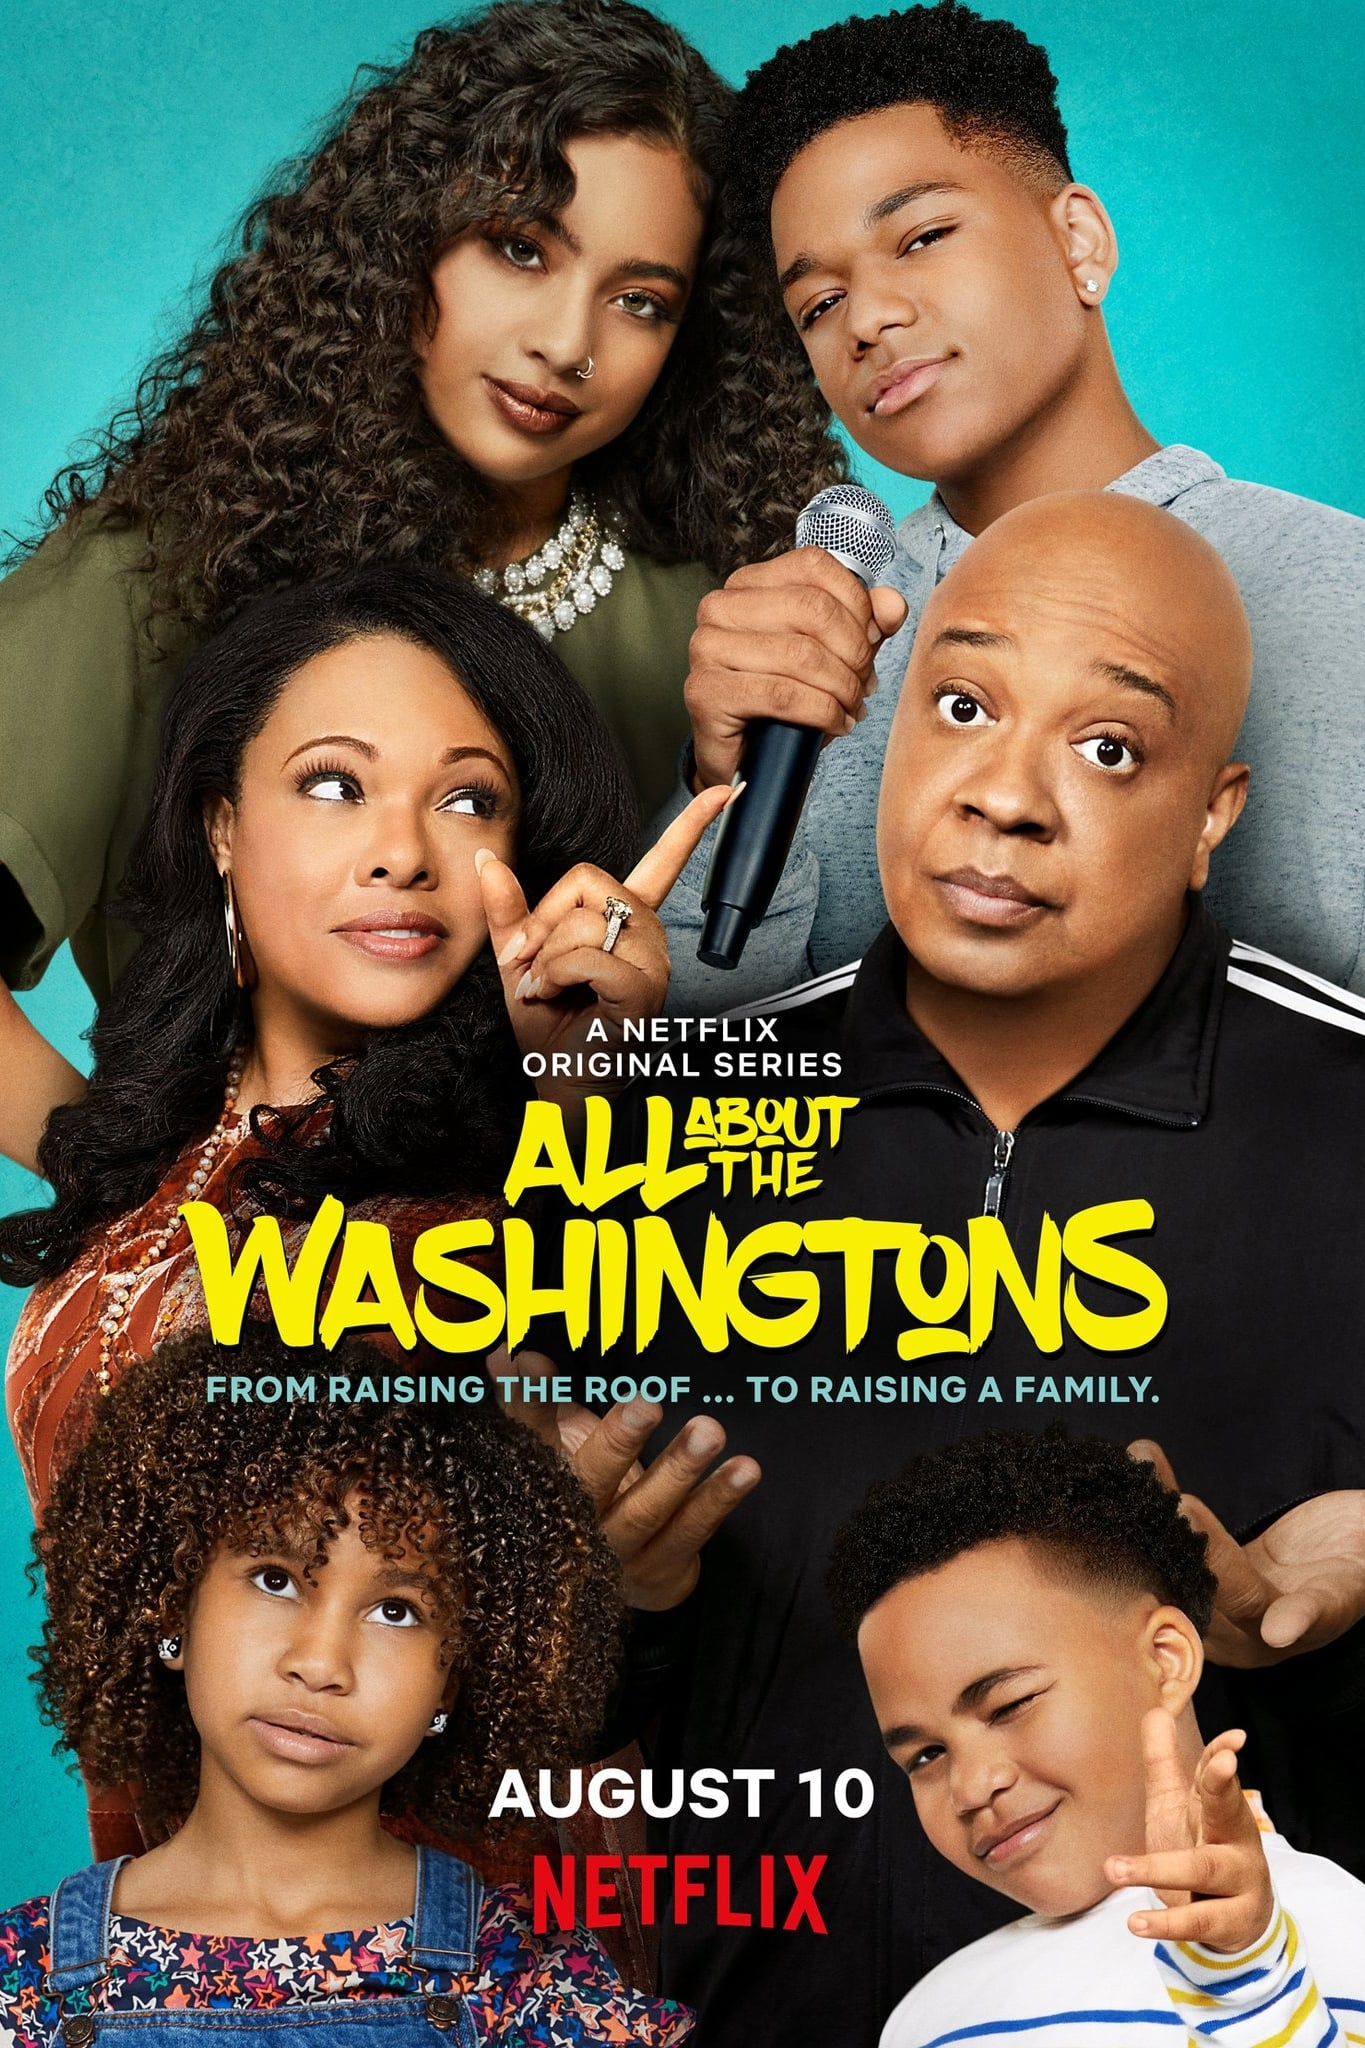 All About the Washingtons Season 1